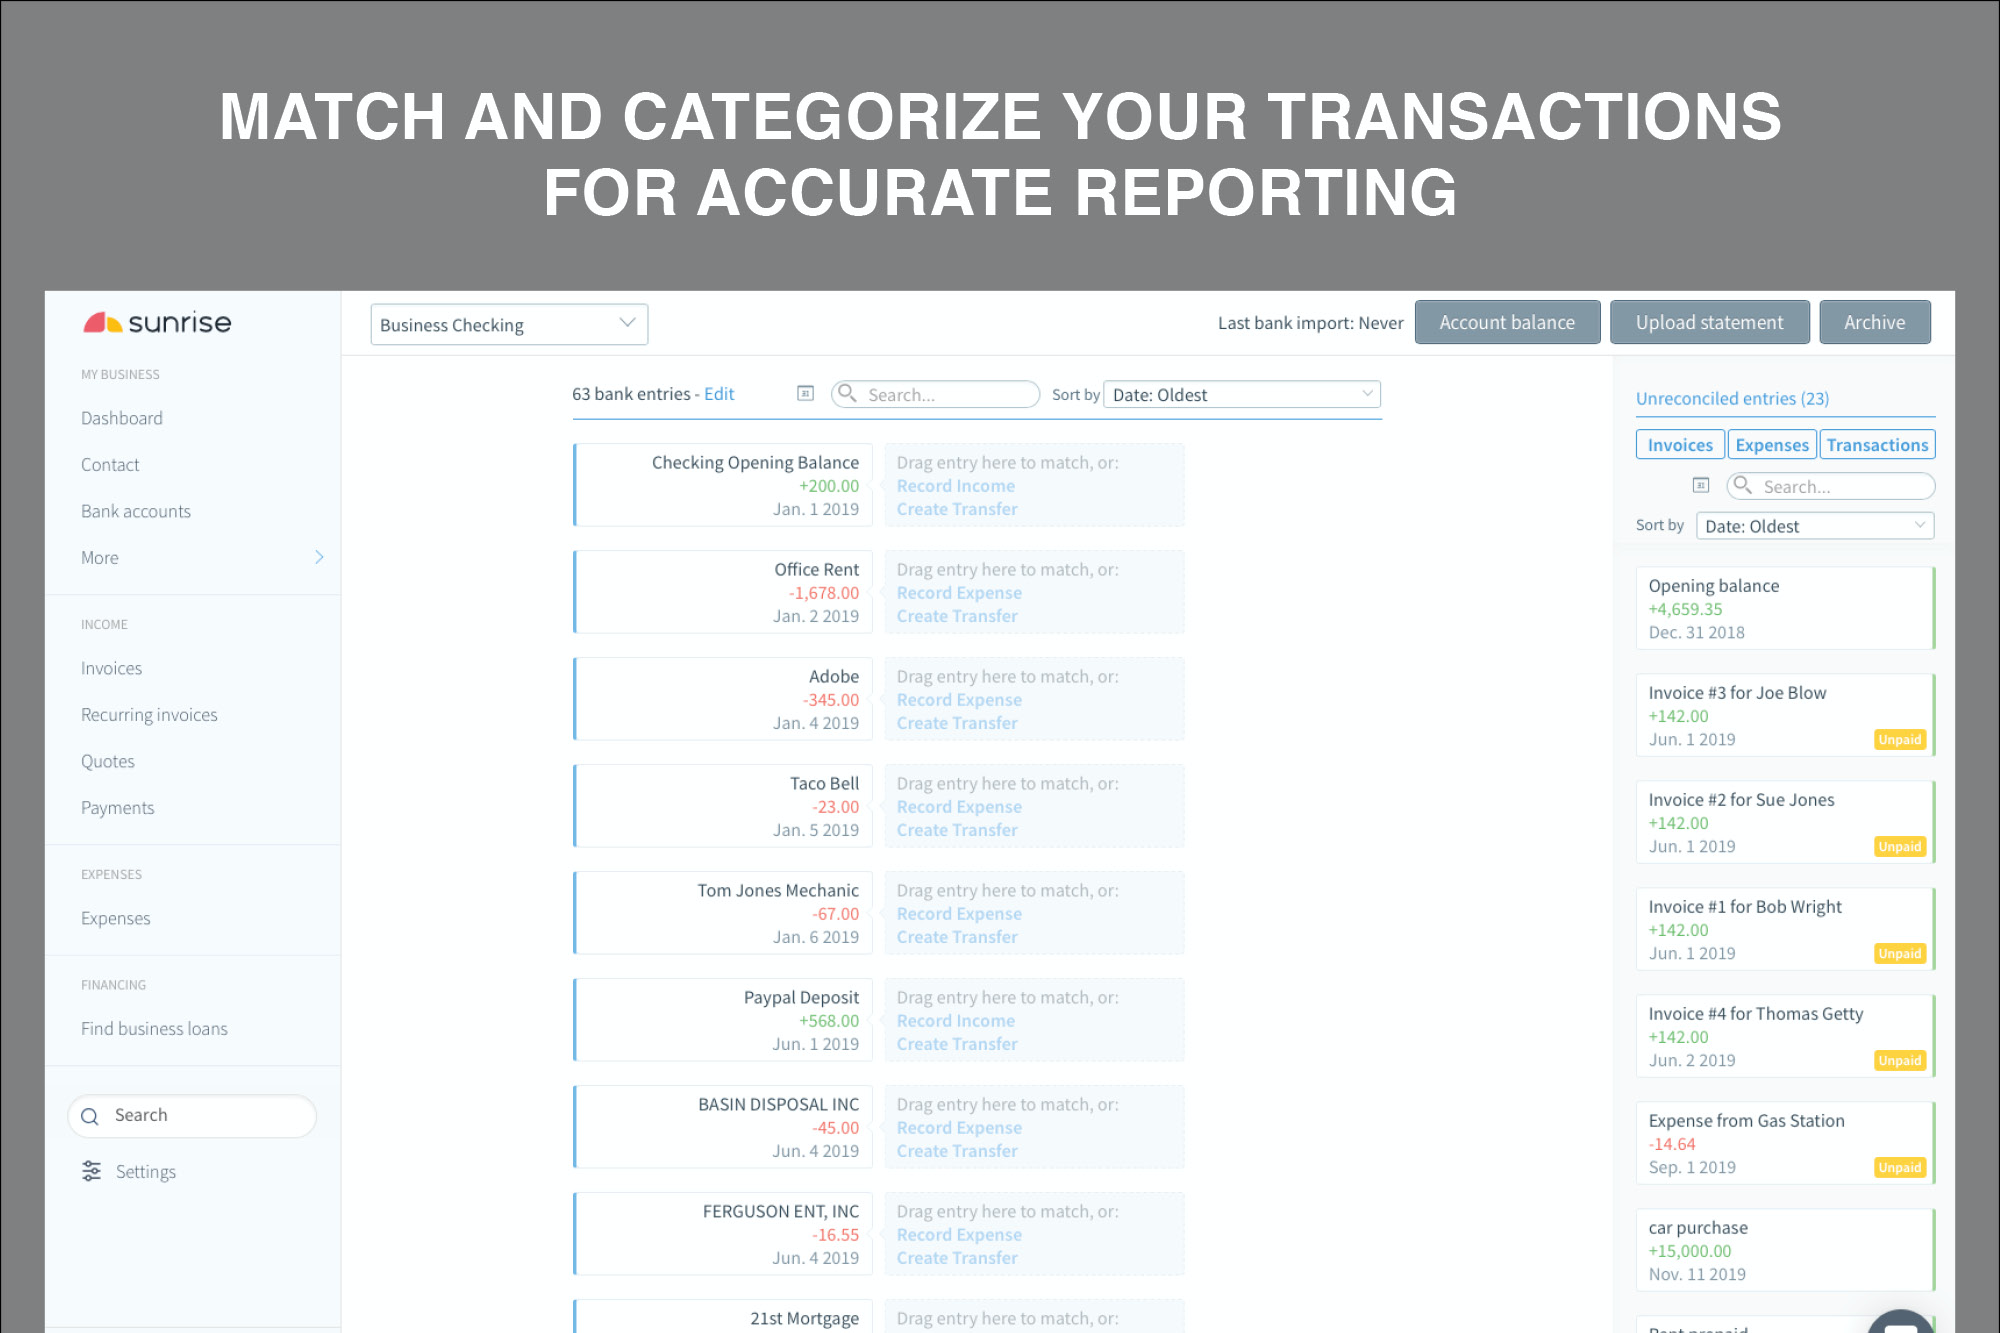 Match and categorize your transactions for accurate reporting.